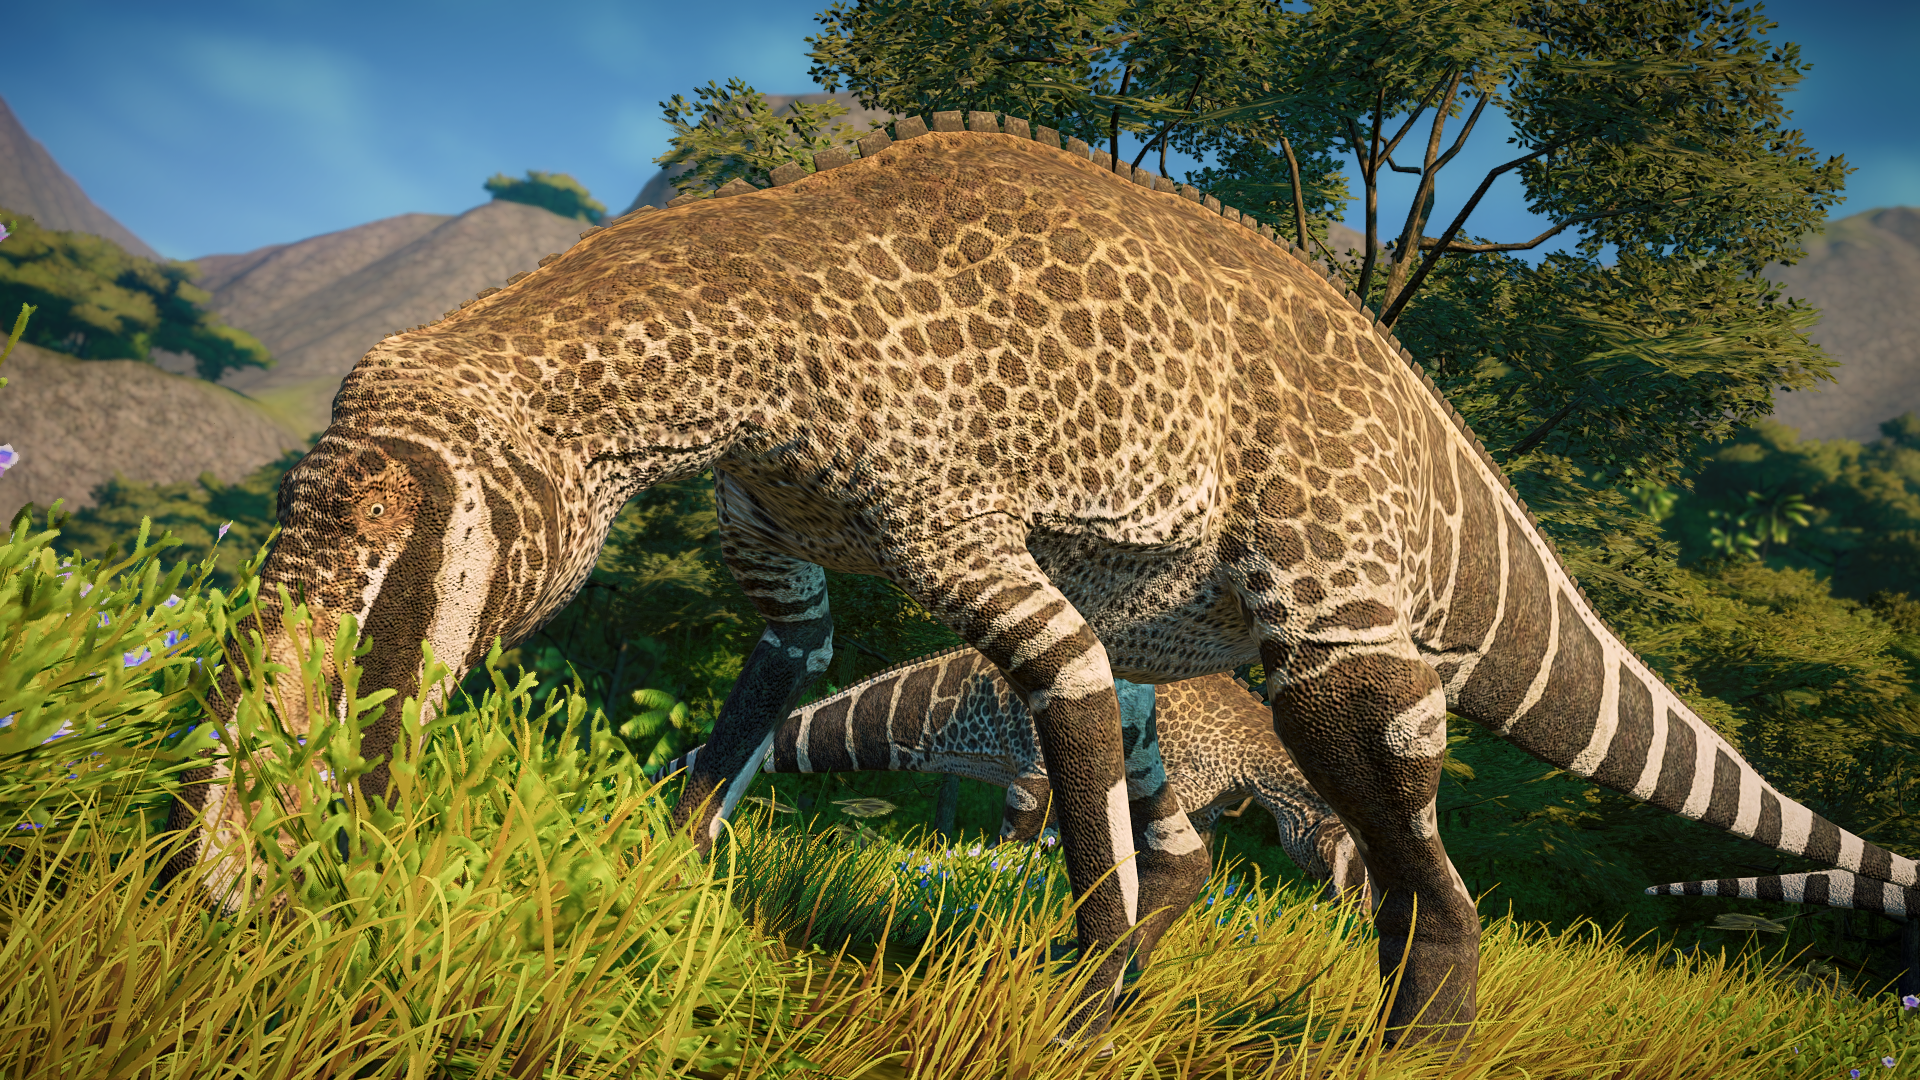 Aog Edmontosaurus Annectens At Jurassic World Evolution Nexus Mods And Community In 2020 Prehistoric Creatures Prehistoric Creatures Evolution pc game mods on gamewatcher.com. aog edmontosaurus annectens at jurassic